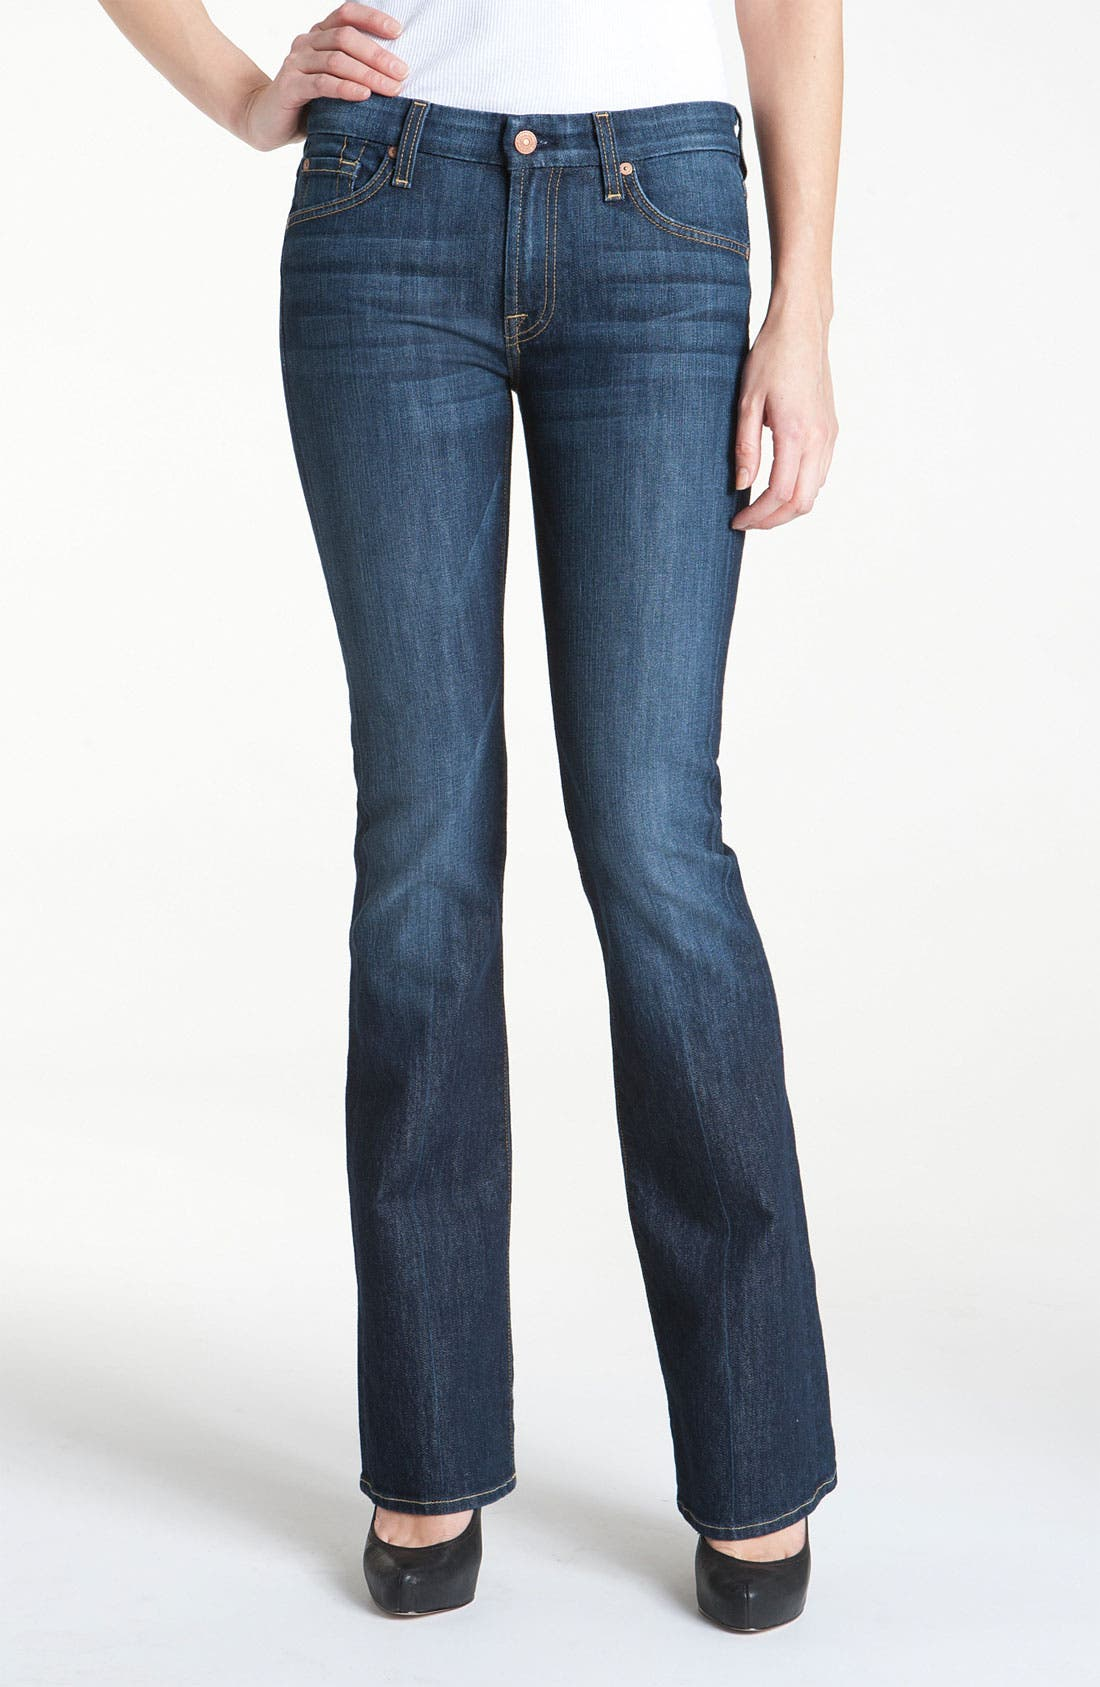 Alternate Image 1 Selected - 7 For All Mankind® 'Kimmie' Bootcut Jeans (Midnight New York Dark)